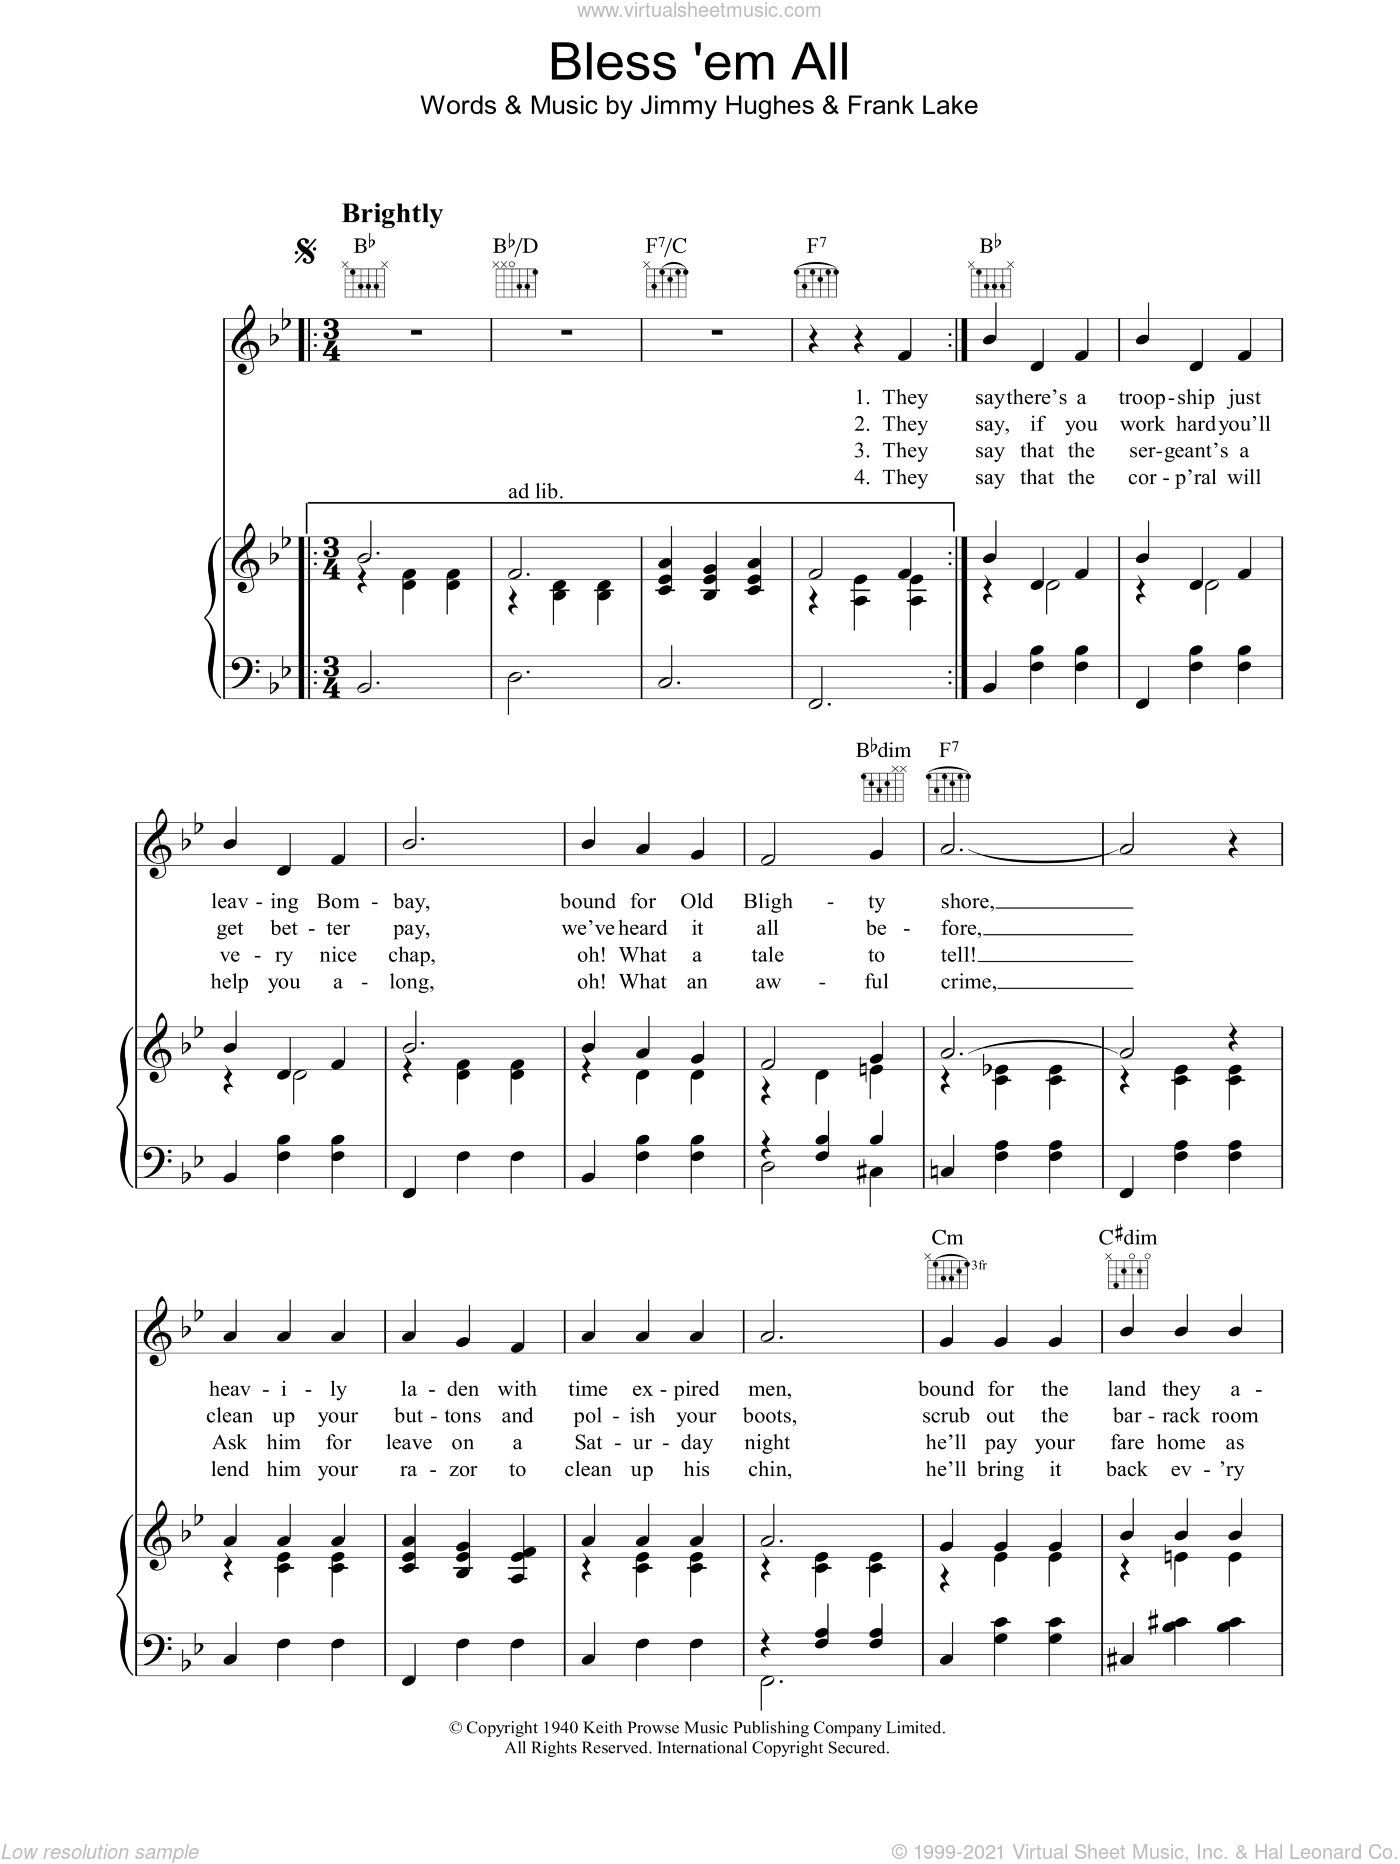 Bless 'Em All sheet music for voice, piano or guitar by Jimmy Hughes and Frank Lake, intermediate skill level